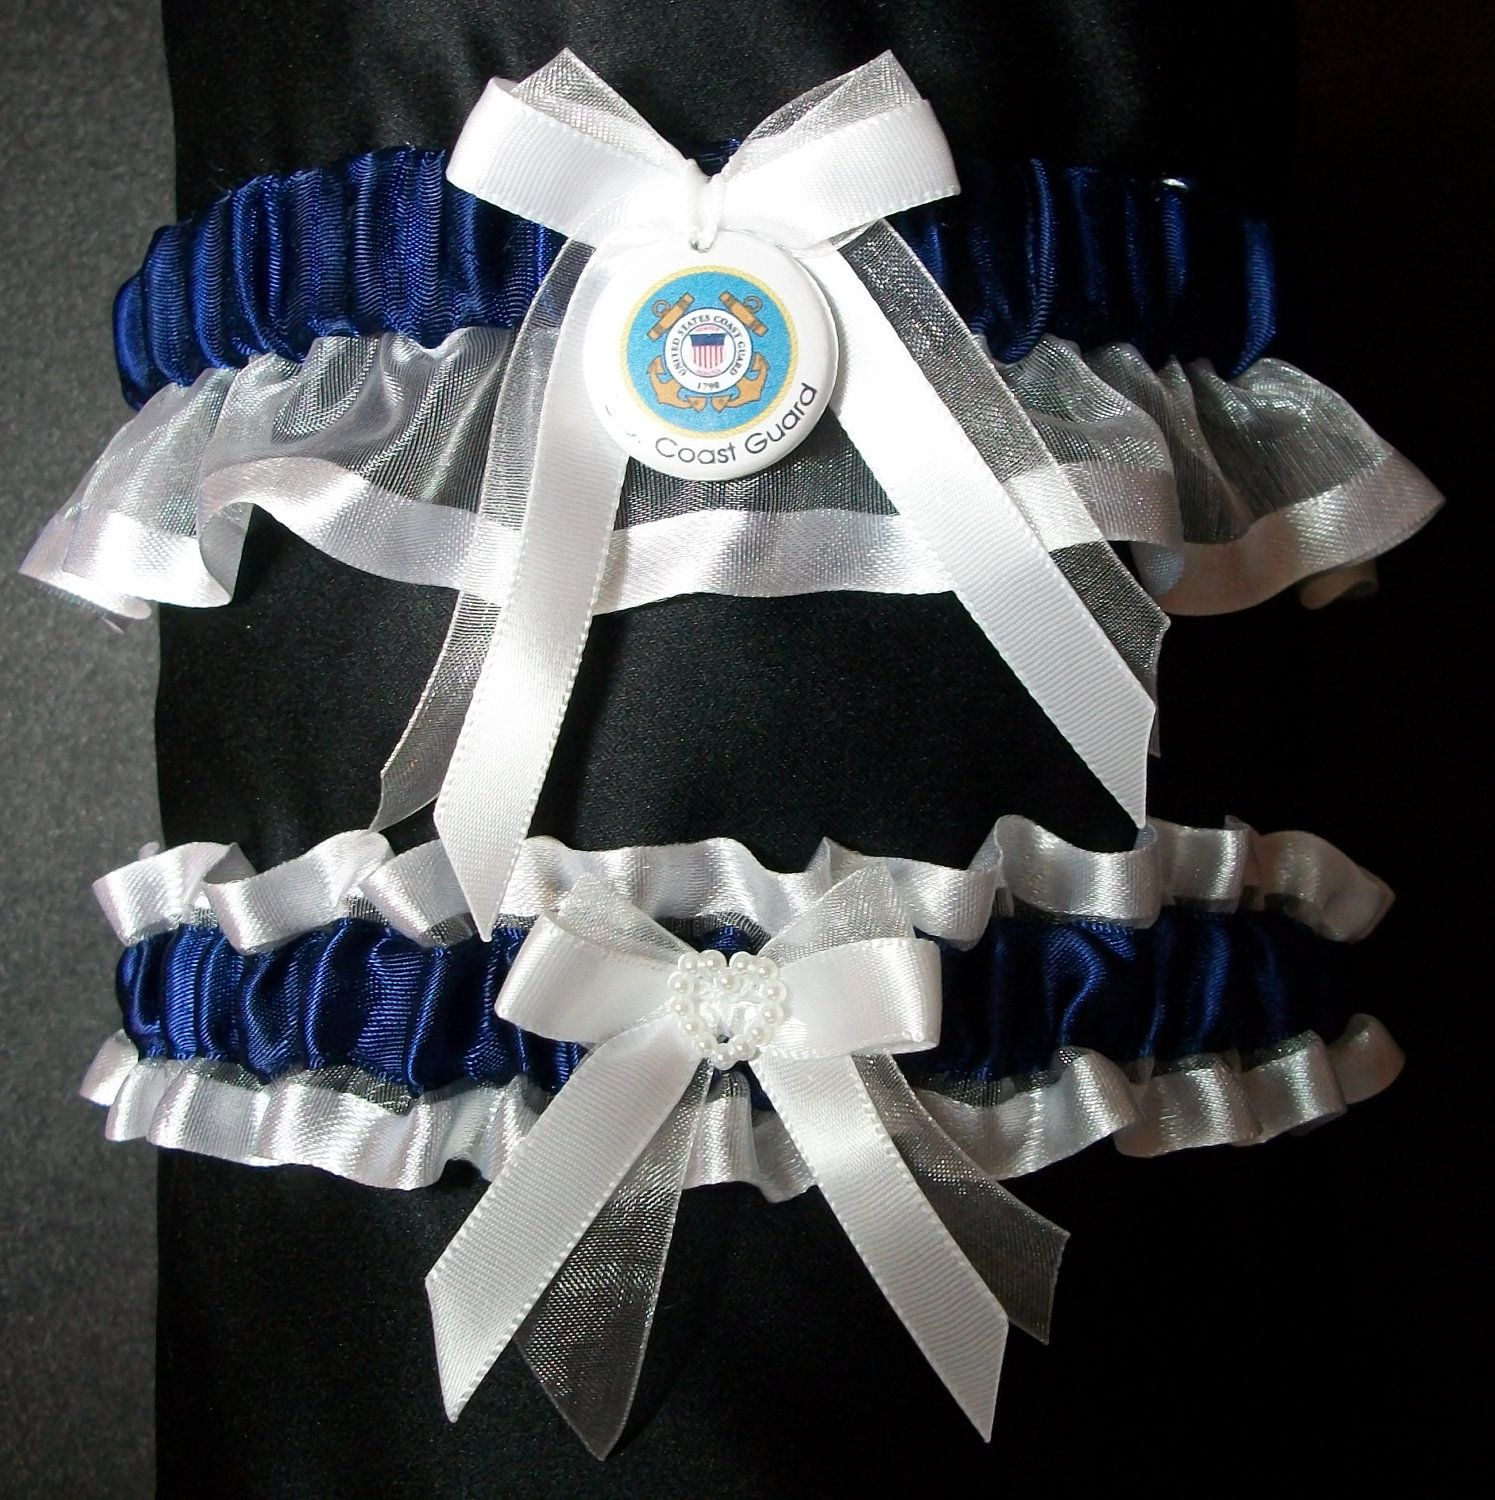 United states coast guard garter set in navy blue fabric with white